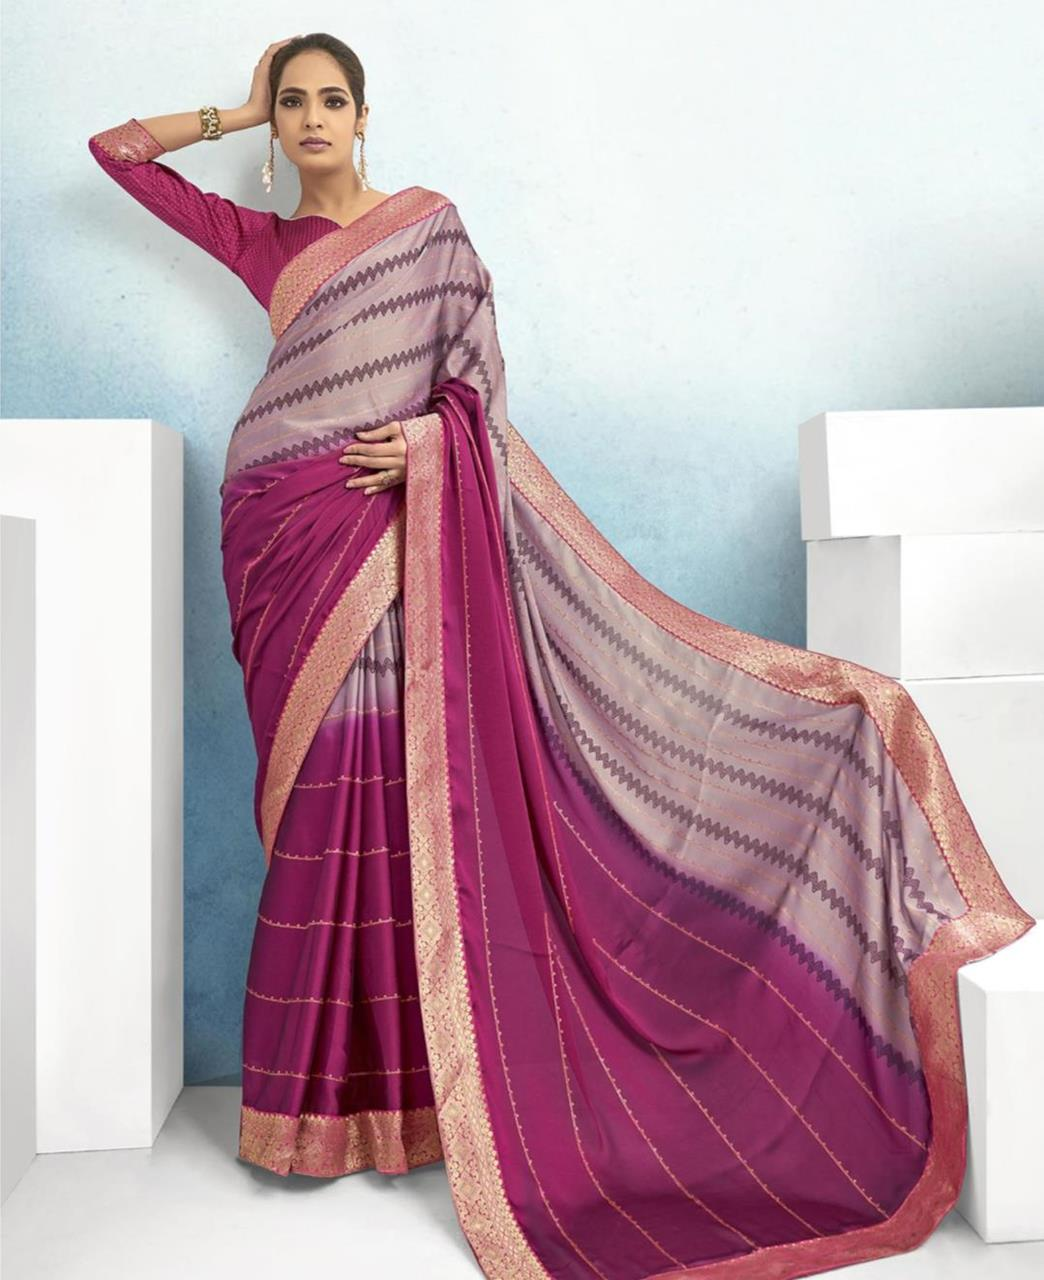 Lace Chiffon Saree in Pink